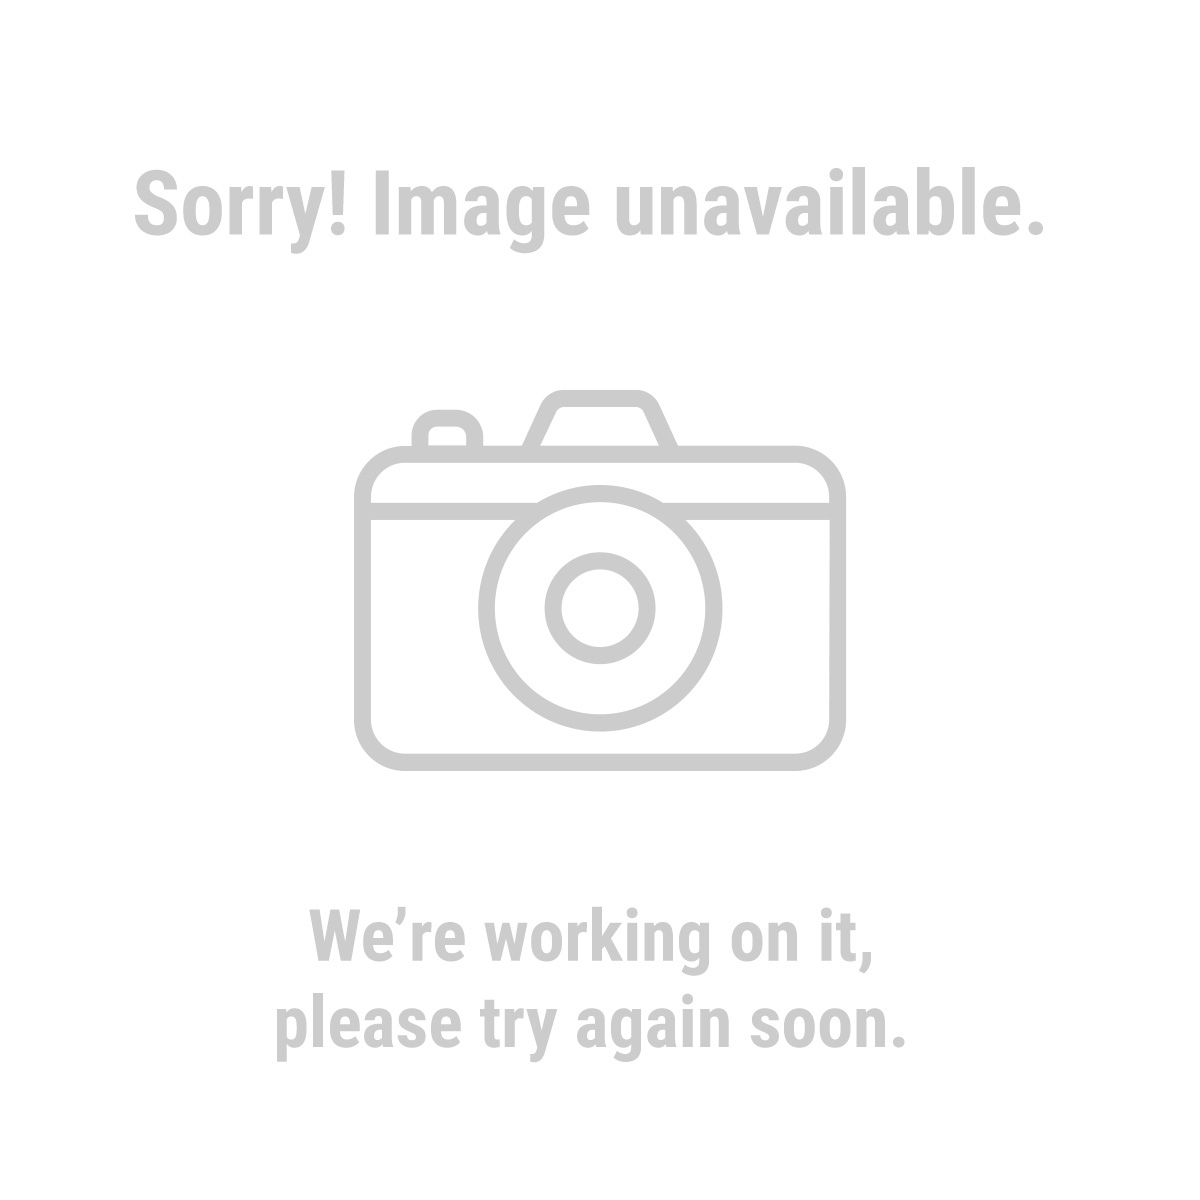 Warrior 61053 9 in. 24 Grit Metal Grinding Wheel